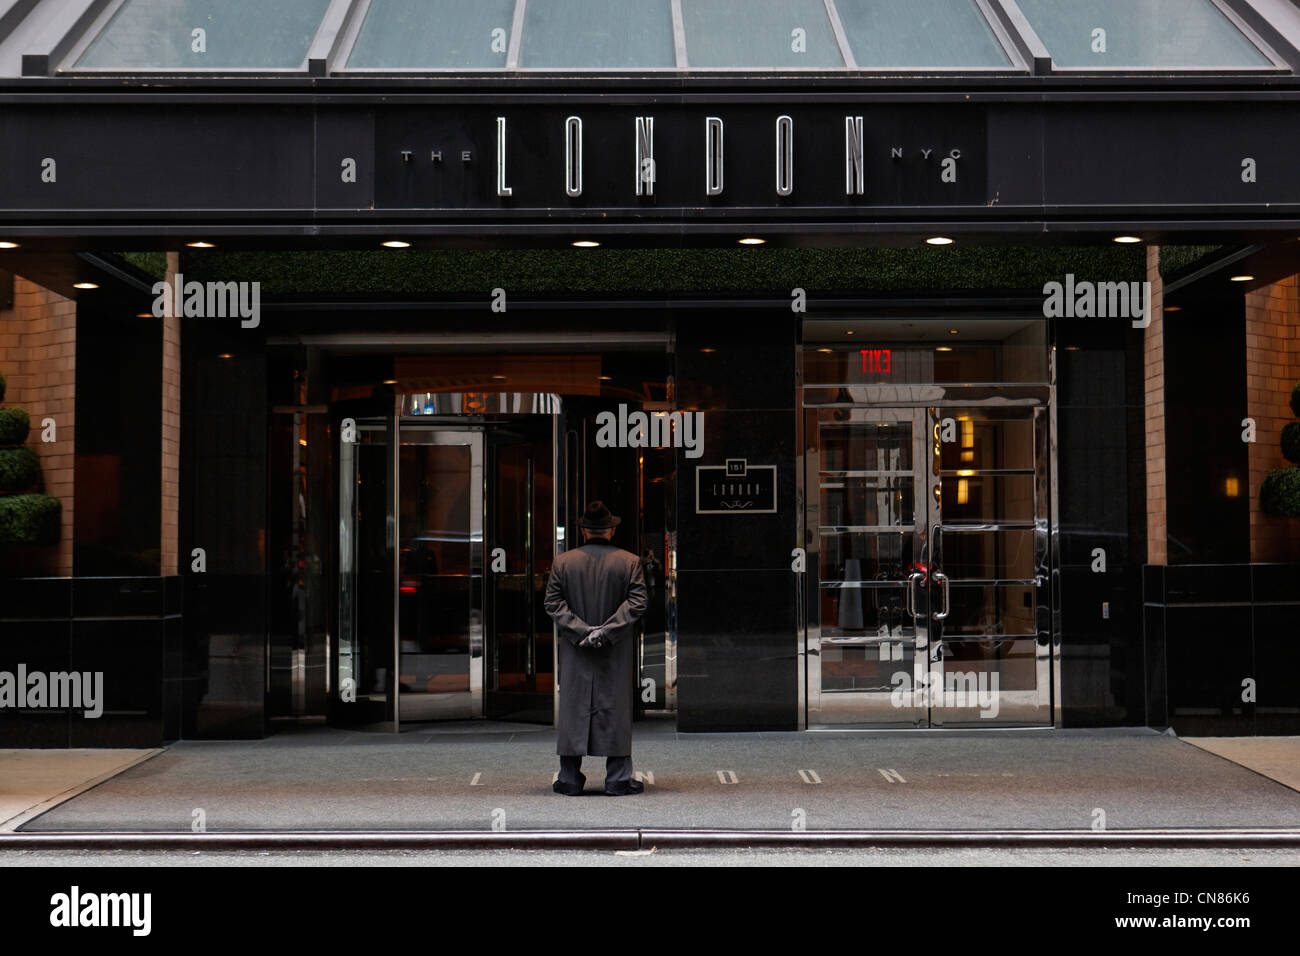 The London Hotel New York High Resolution Stock Photography And Images Alamy